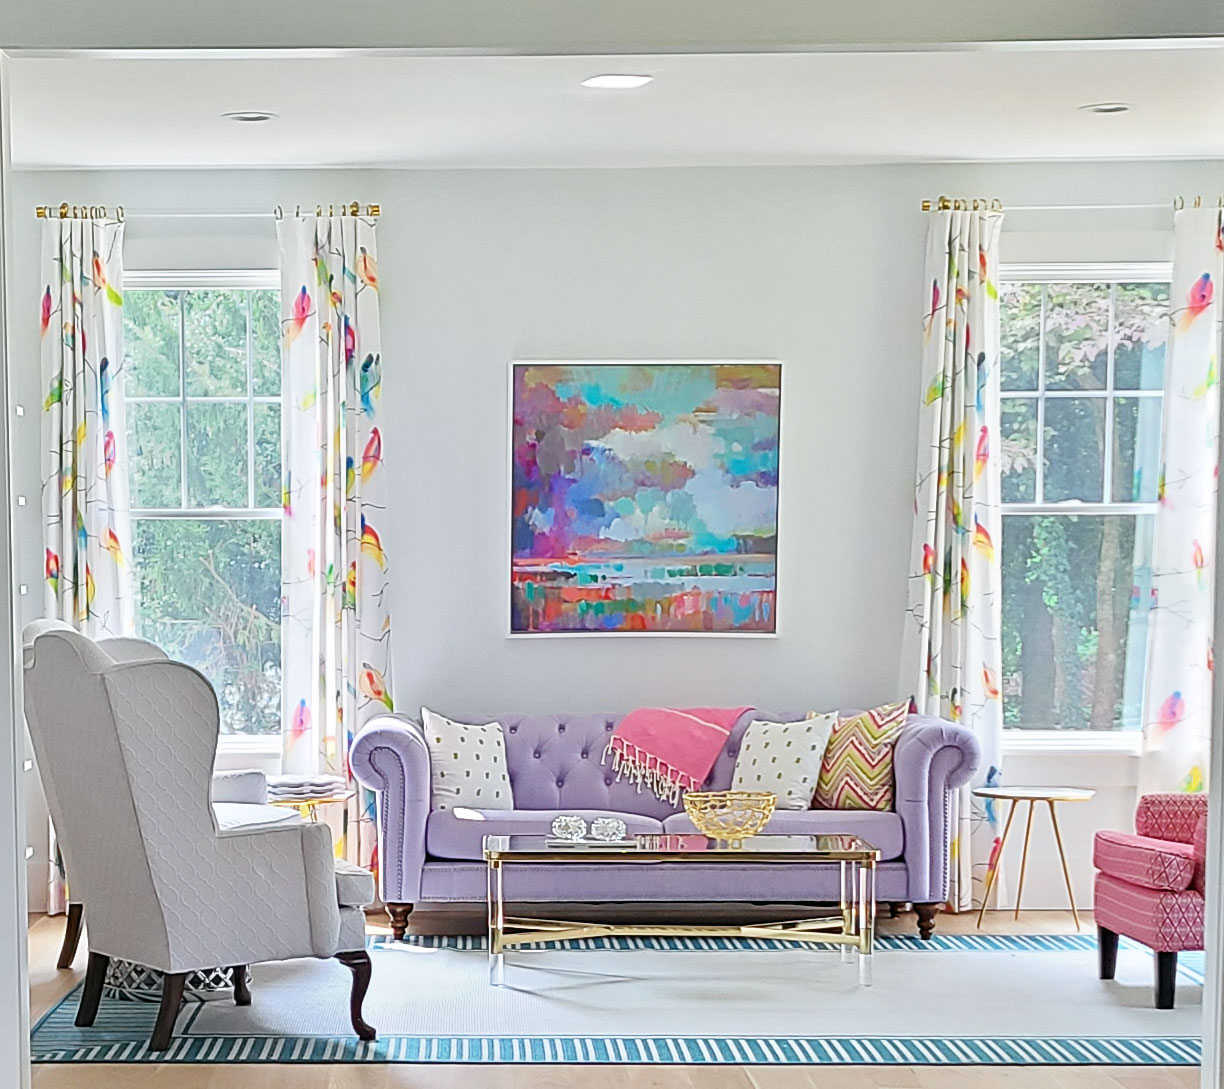 colorful living room design in Devon PA home. Off white walls, lavander couch, bird print window treatments